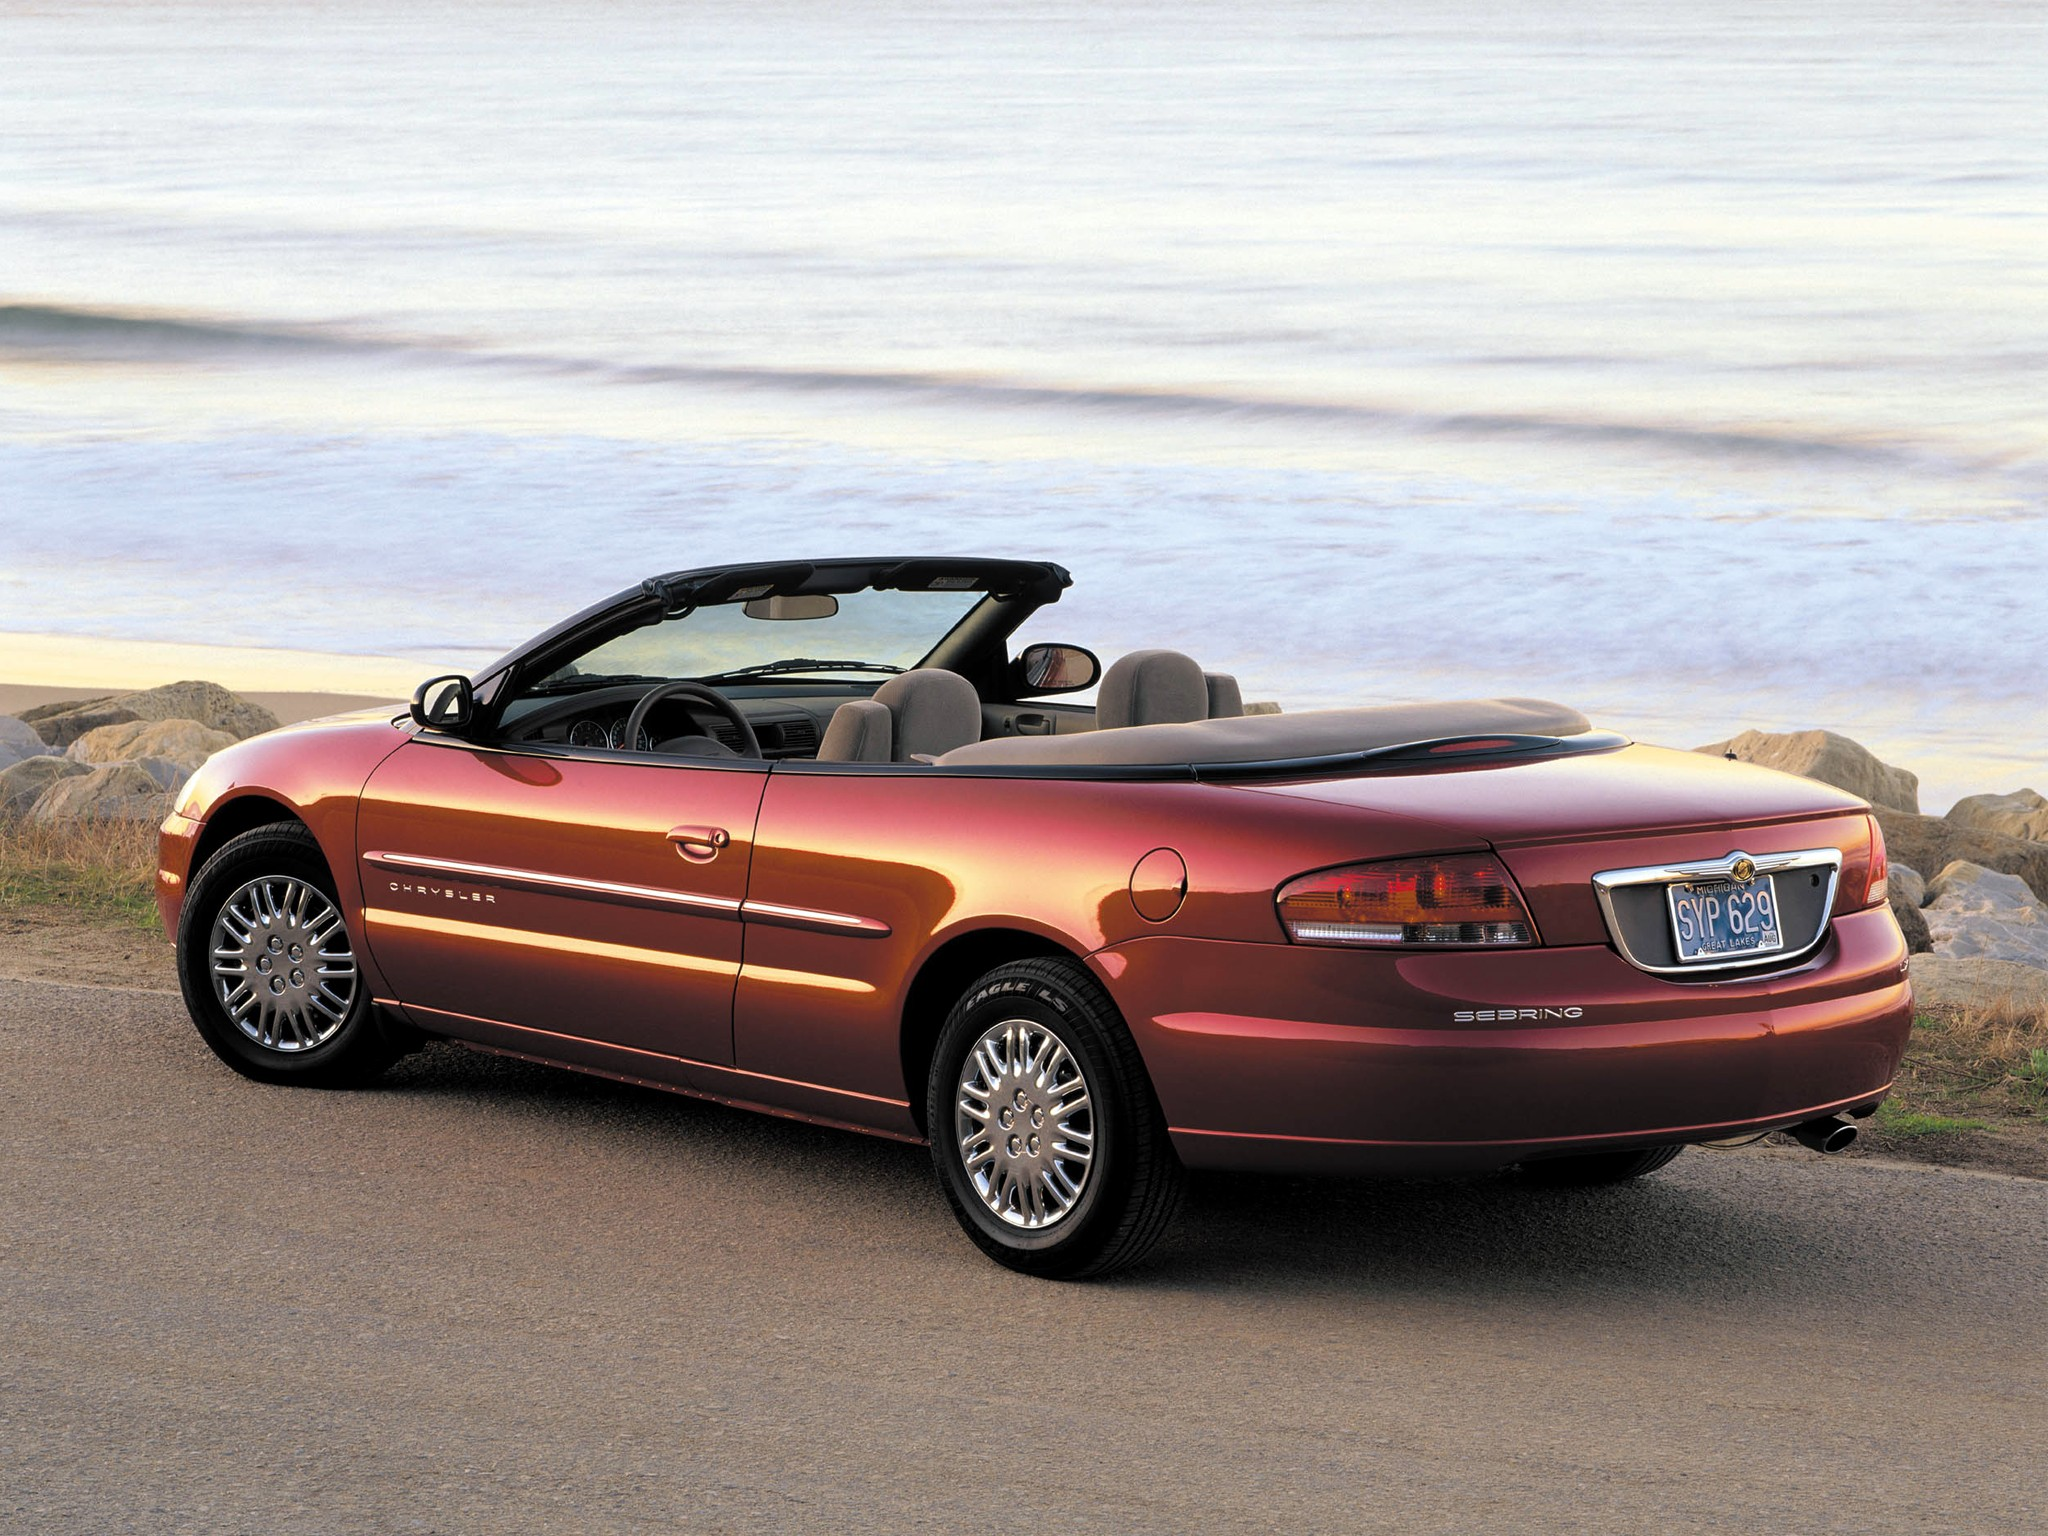 Chrysler Sebring Convertible on 2001 Chrysler Sebring Convertible